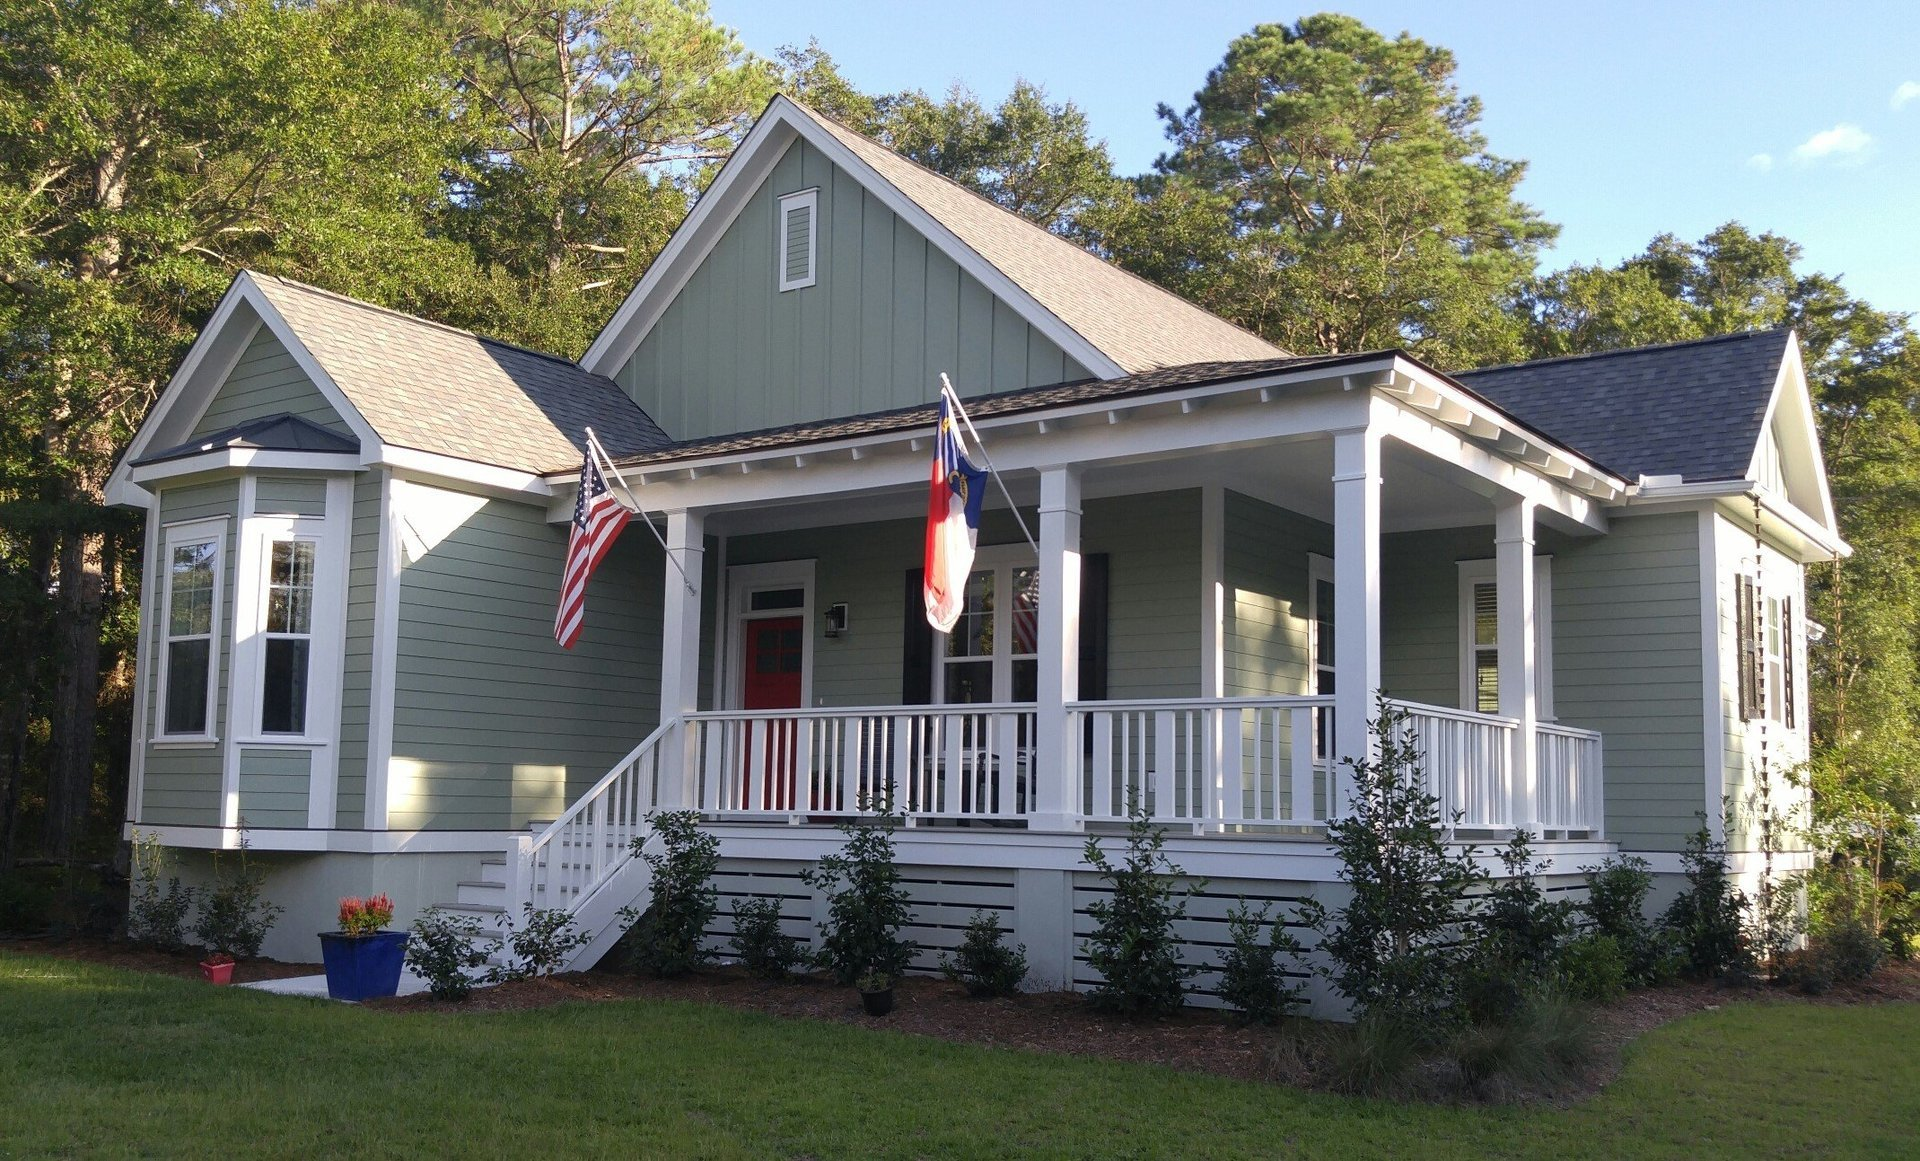 Cottages for sale southport nc homes for sale cl smith for Cottage builders nc